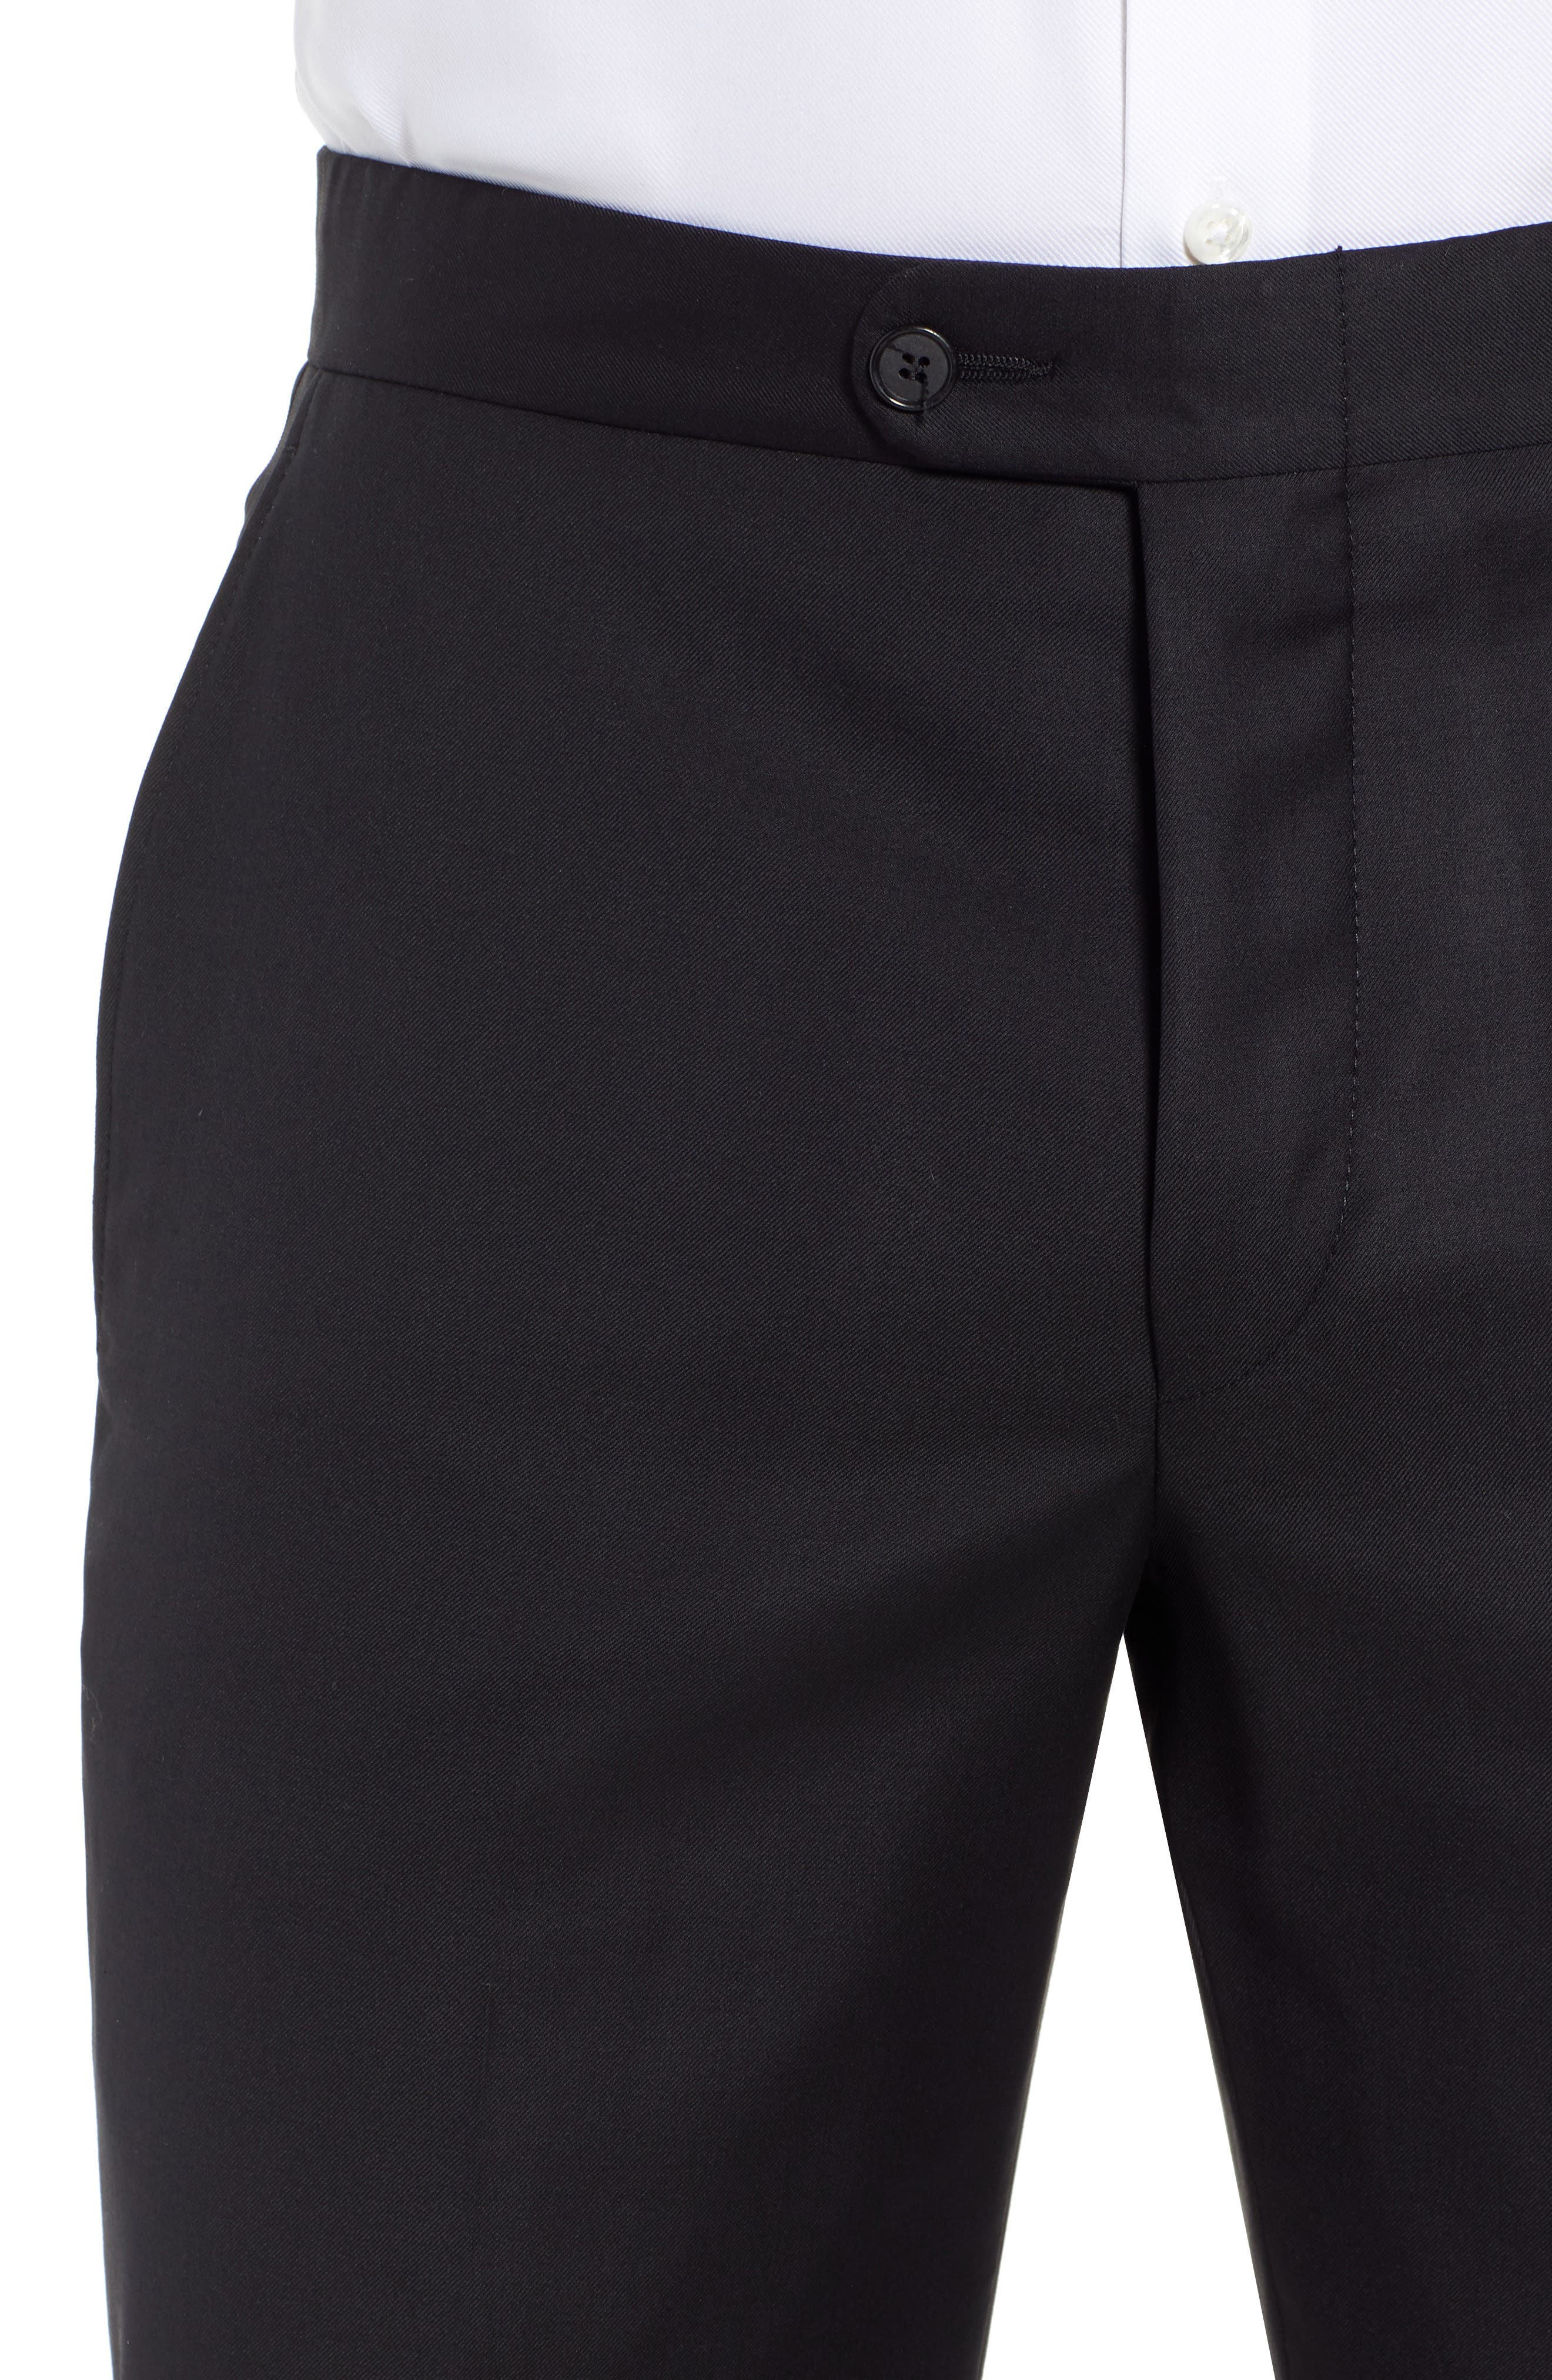 Classic B Fit Flat Front Solid Wool Trousers,                             Alternate thumbnail 4, color,                             BLACK SOLID